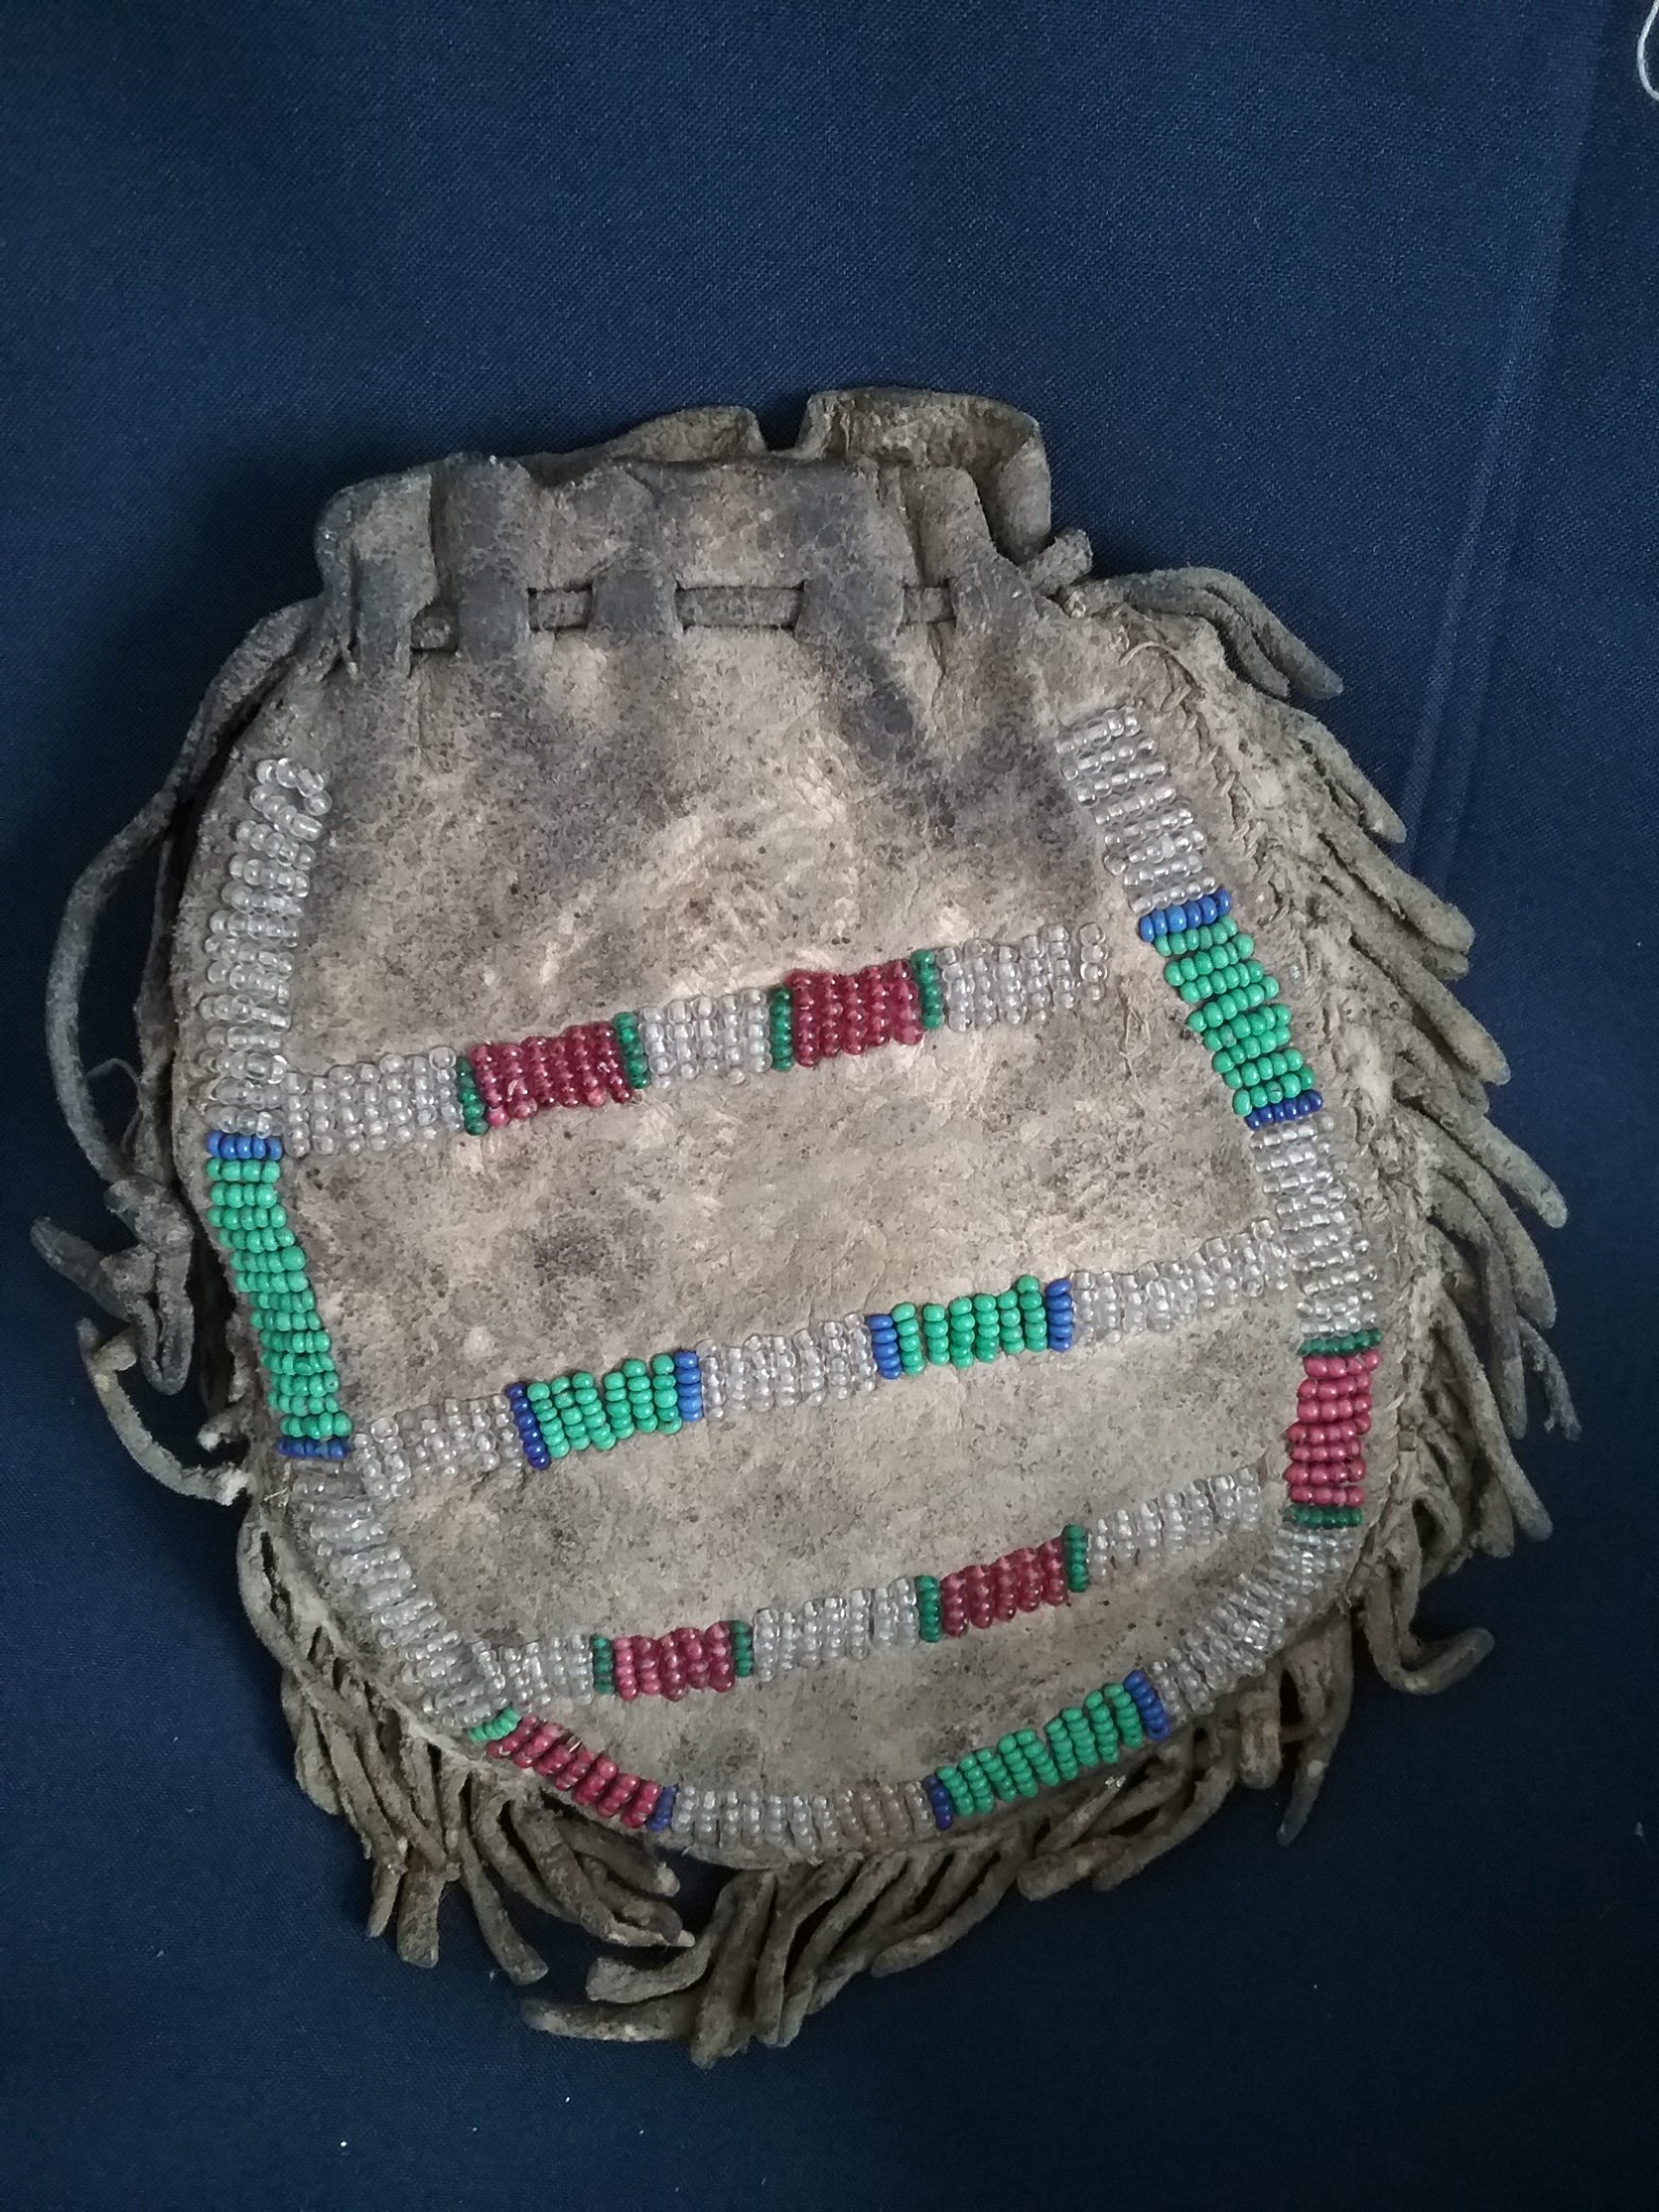 Blackfoot Bag (back): Beaded leather bag attributed to the Blackfoot Nation, c. 1890. This bag was brought to Minnesota by Earl E. Bundy, who worked with a group of Blackfoot Indians on a cattle ranch. He was 17 when he got this bag. Donated by Carol Holmquist. MCHS collections, #1990.28.1.